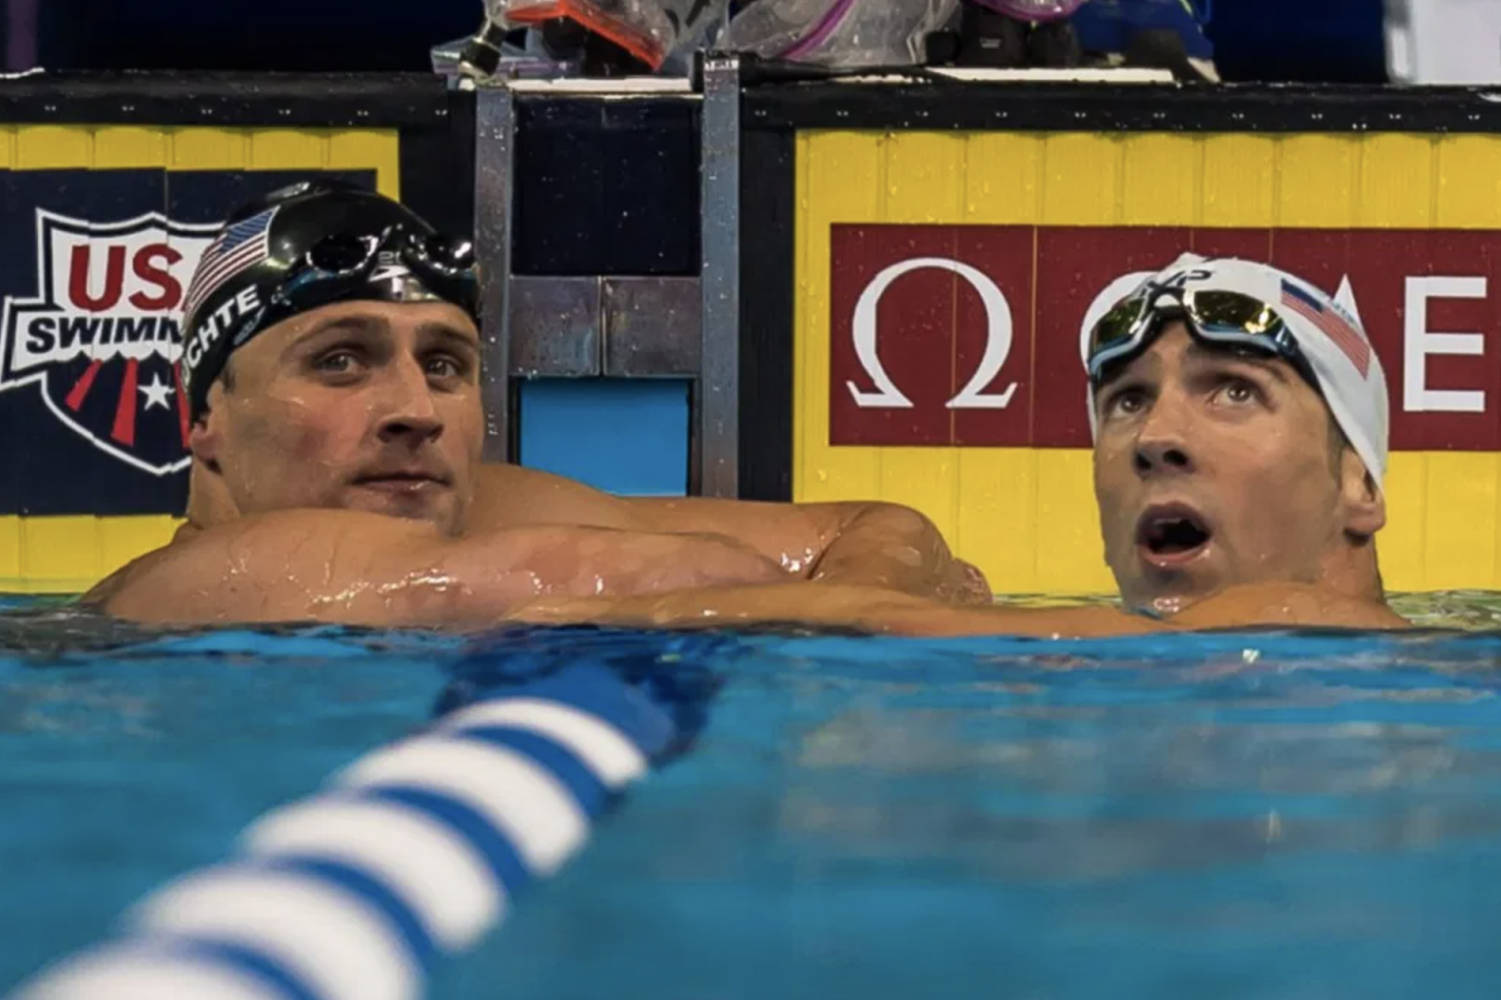 Ryan Lochte and Michael Phelps in Water at Rio Olympics